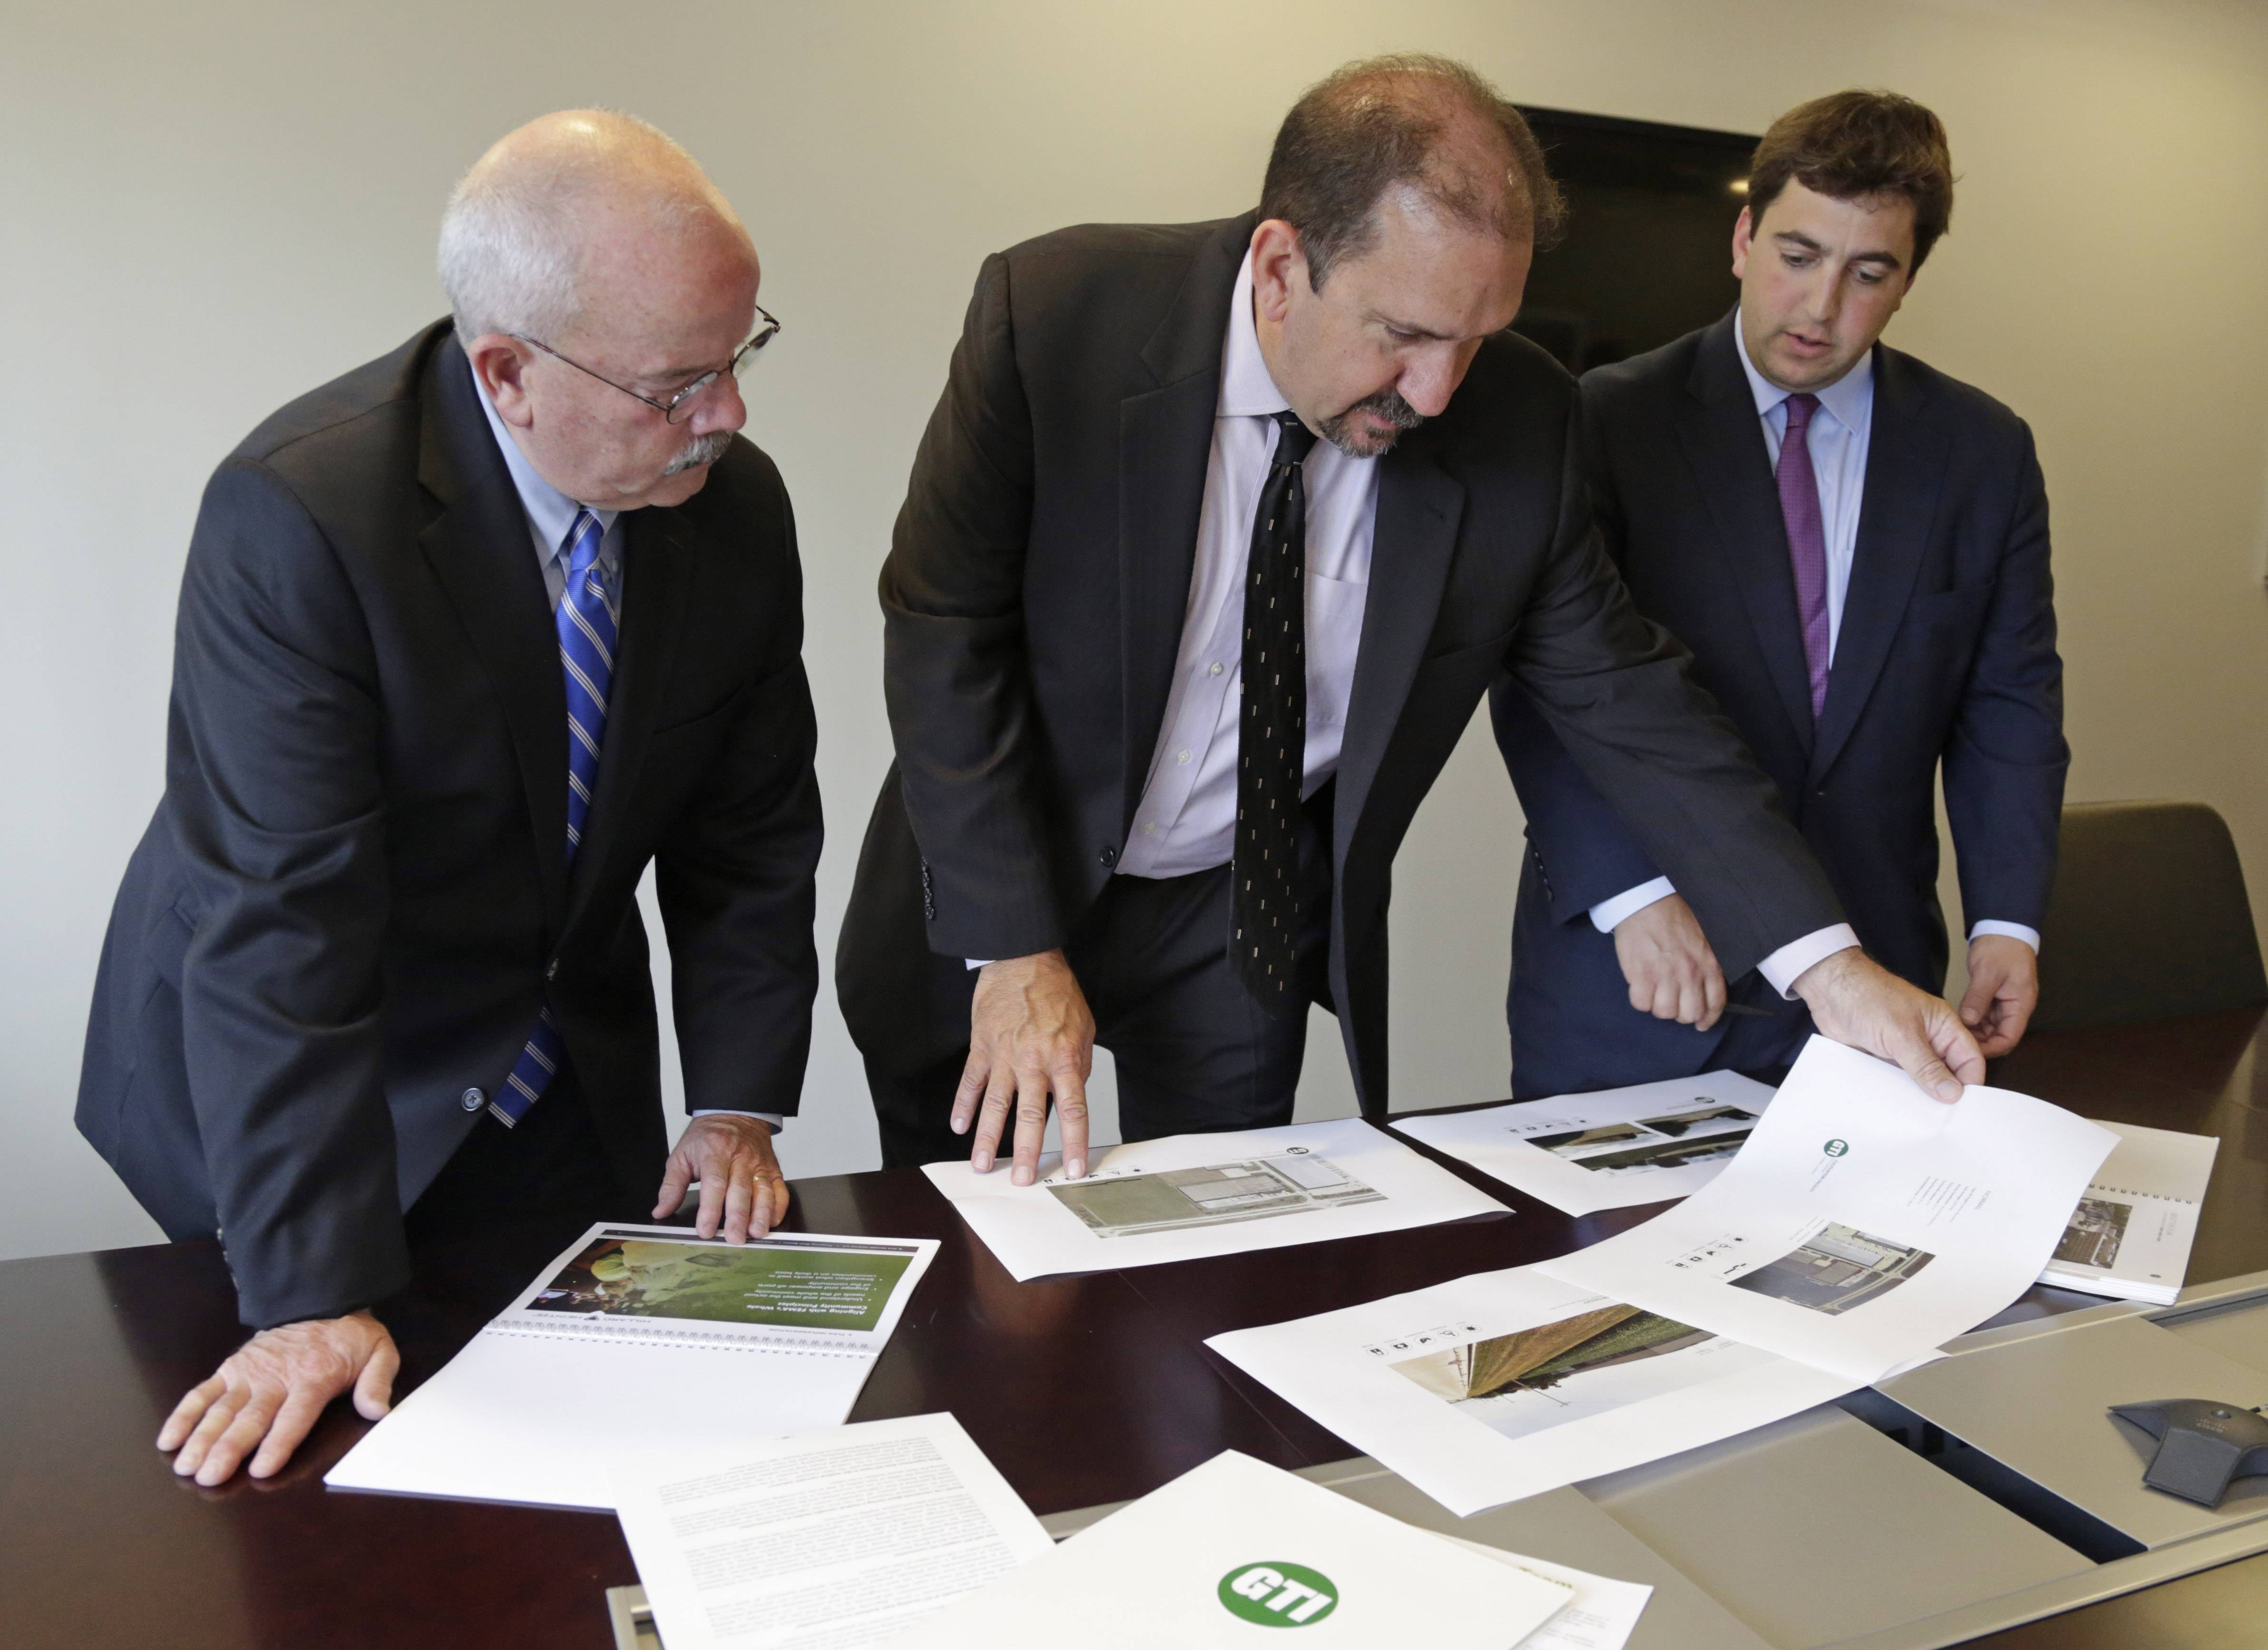 Kenneth Bouch, center, and Ben Kovler, right, of Green Thumb Industries, an Illinois-based partnership of medical marijuana entrepreneurs, review security plans for a proposed medical marijuana facility with security adviser Terry Gainer during a meeting Wednesday in Chicago.